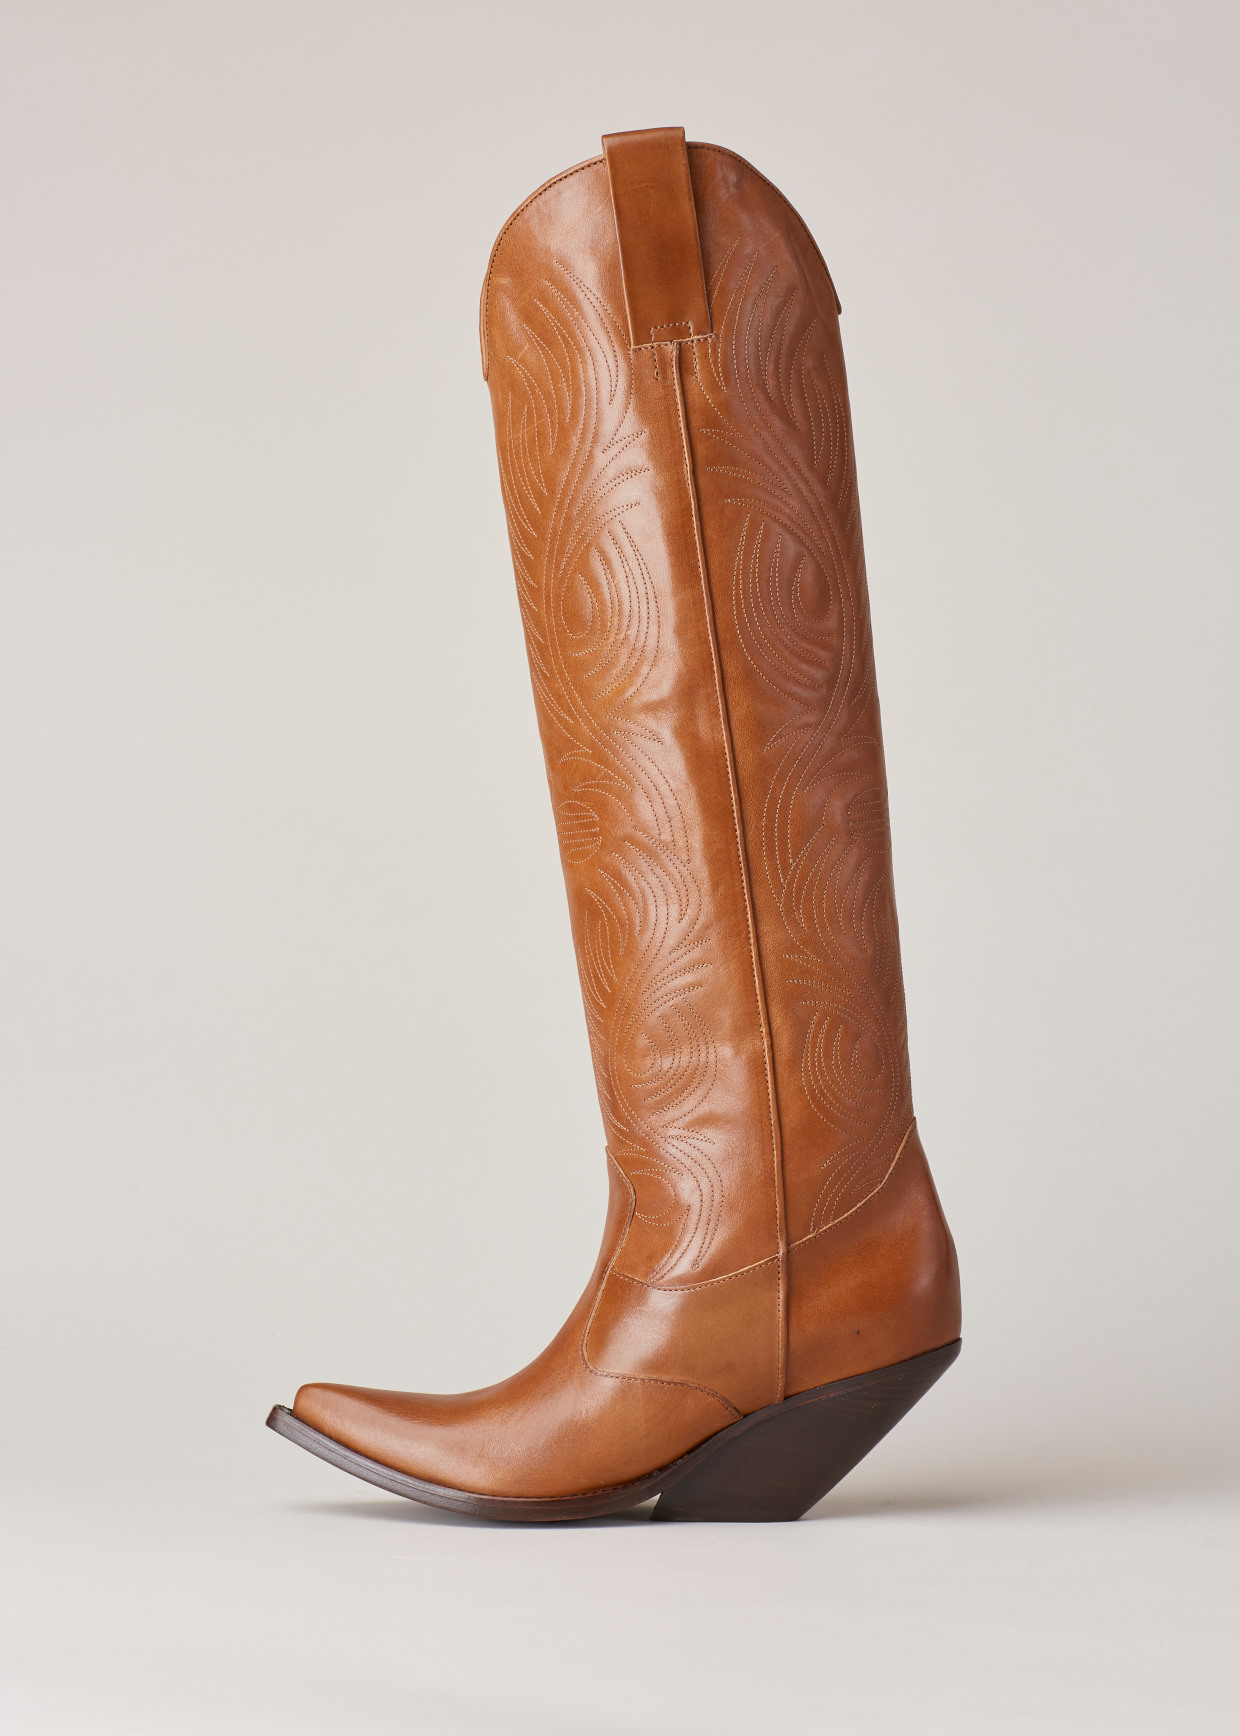 VetementsLeather Western Boots LLOty